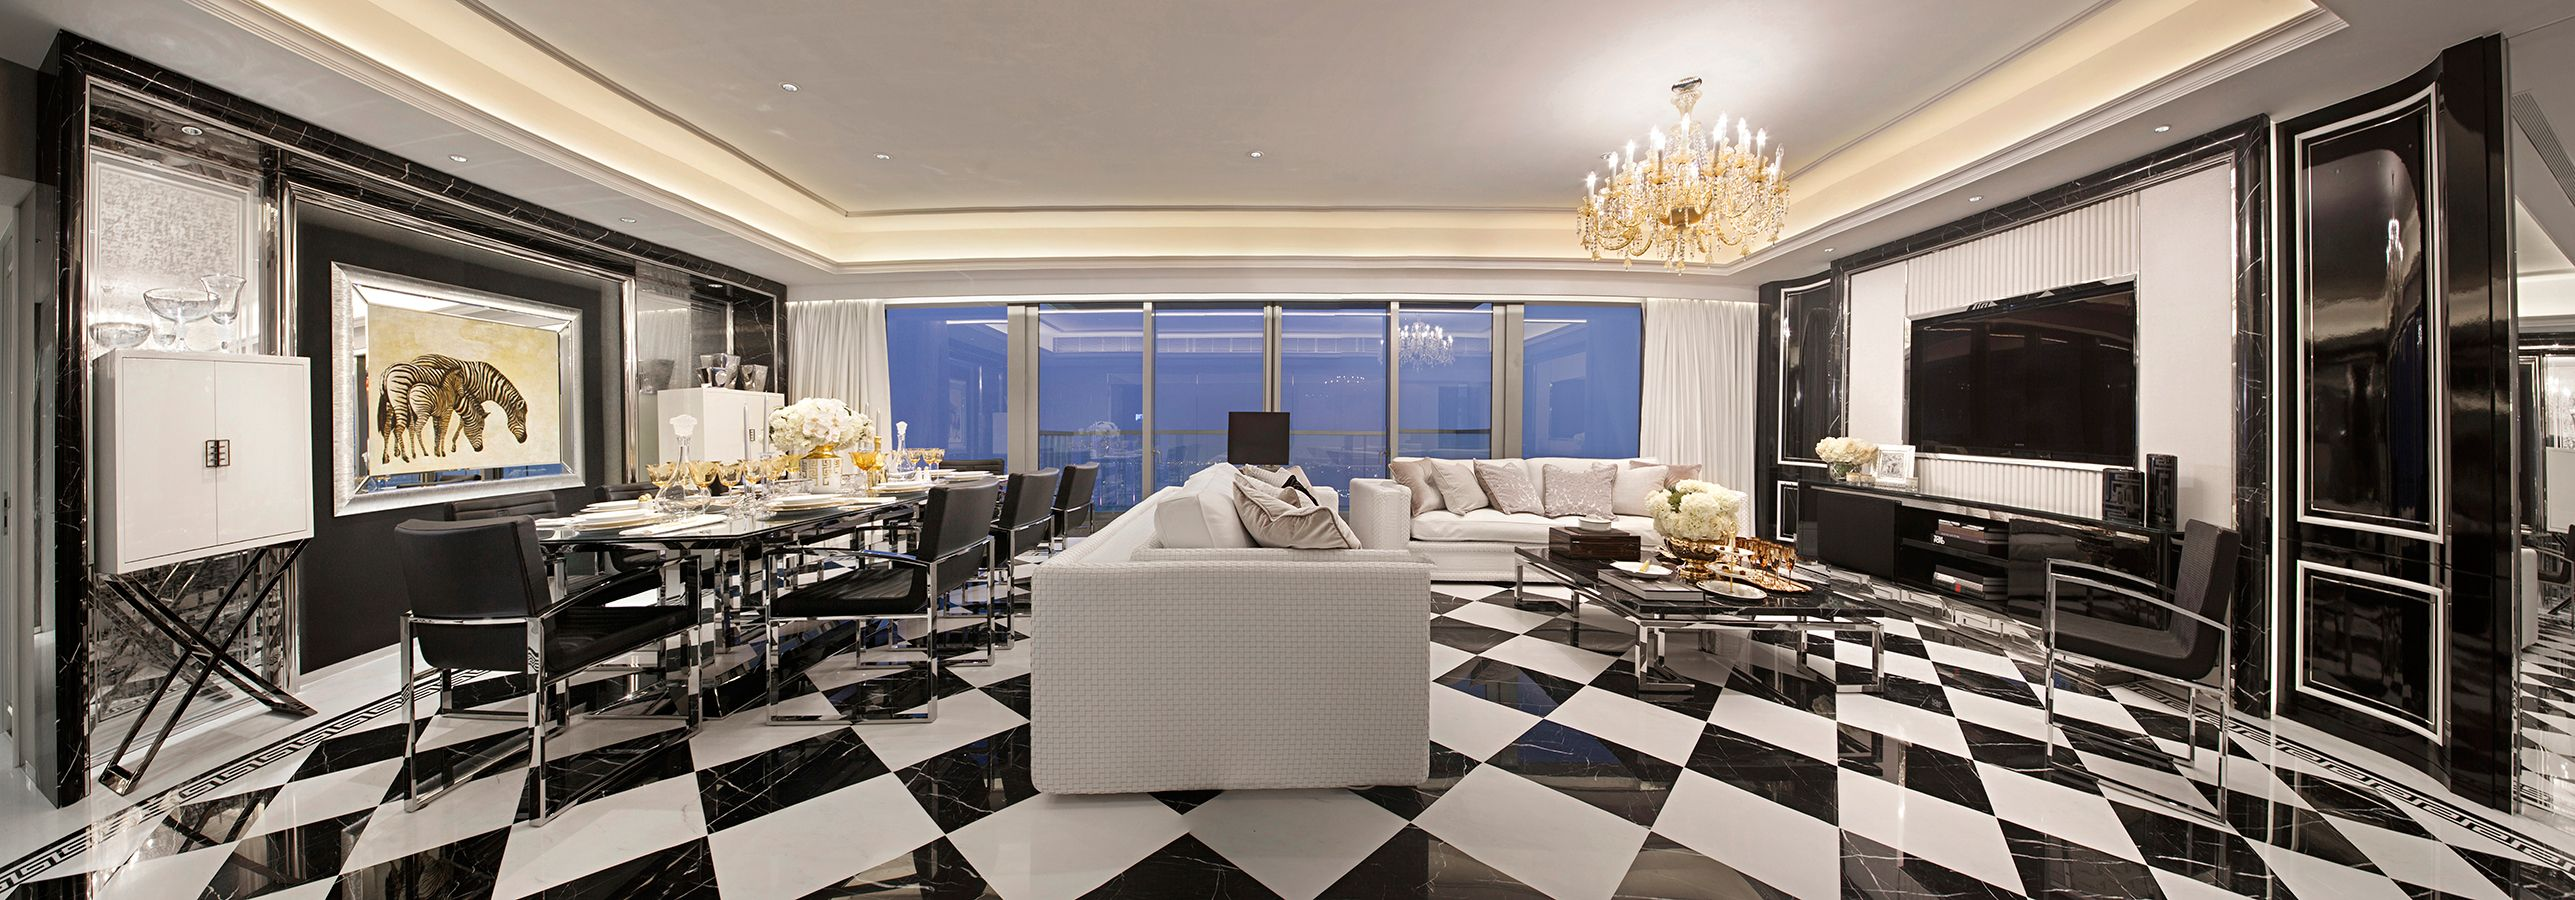 39 Conduit Road Vi Hong Kong Residential Completion Year 2013